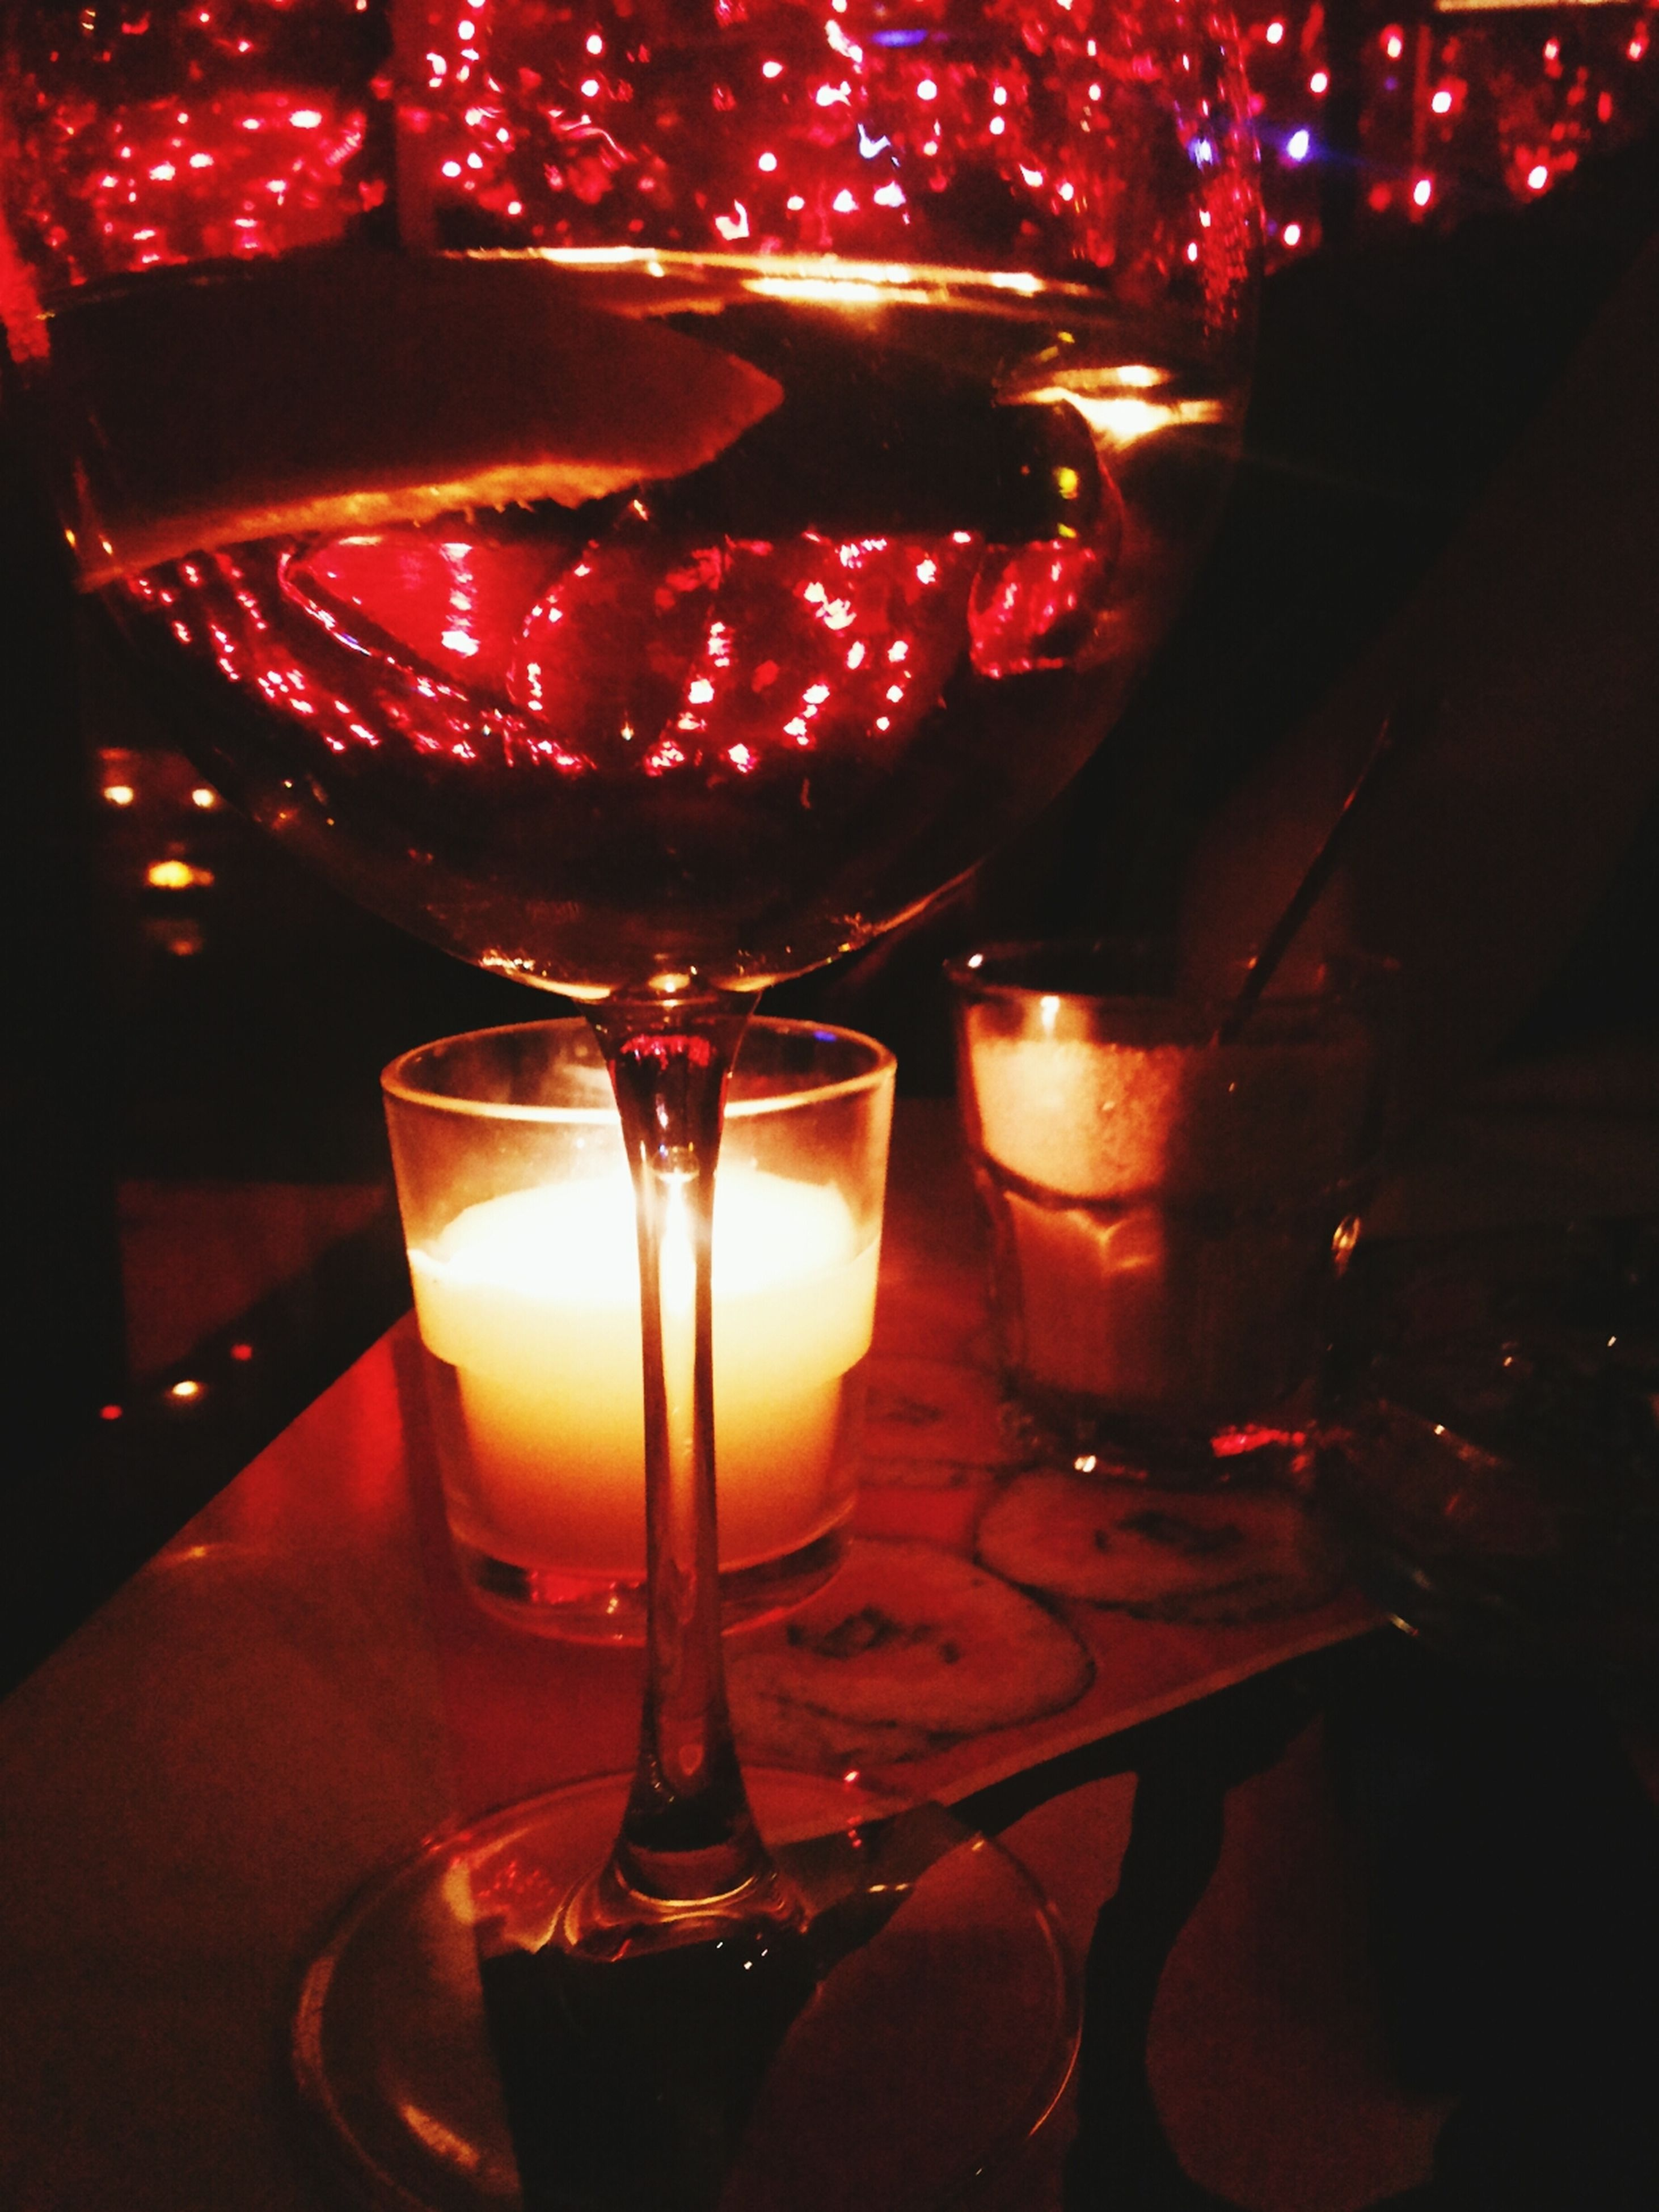 illuminated, indoors, lighting equipment, candle, night, glass - material, table, lit, glowing, transparent, drink, drinking glass, wine, close-up, light - natural phenomenon, food and drink, wineglass, restaurant, burning, alcohol